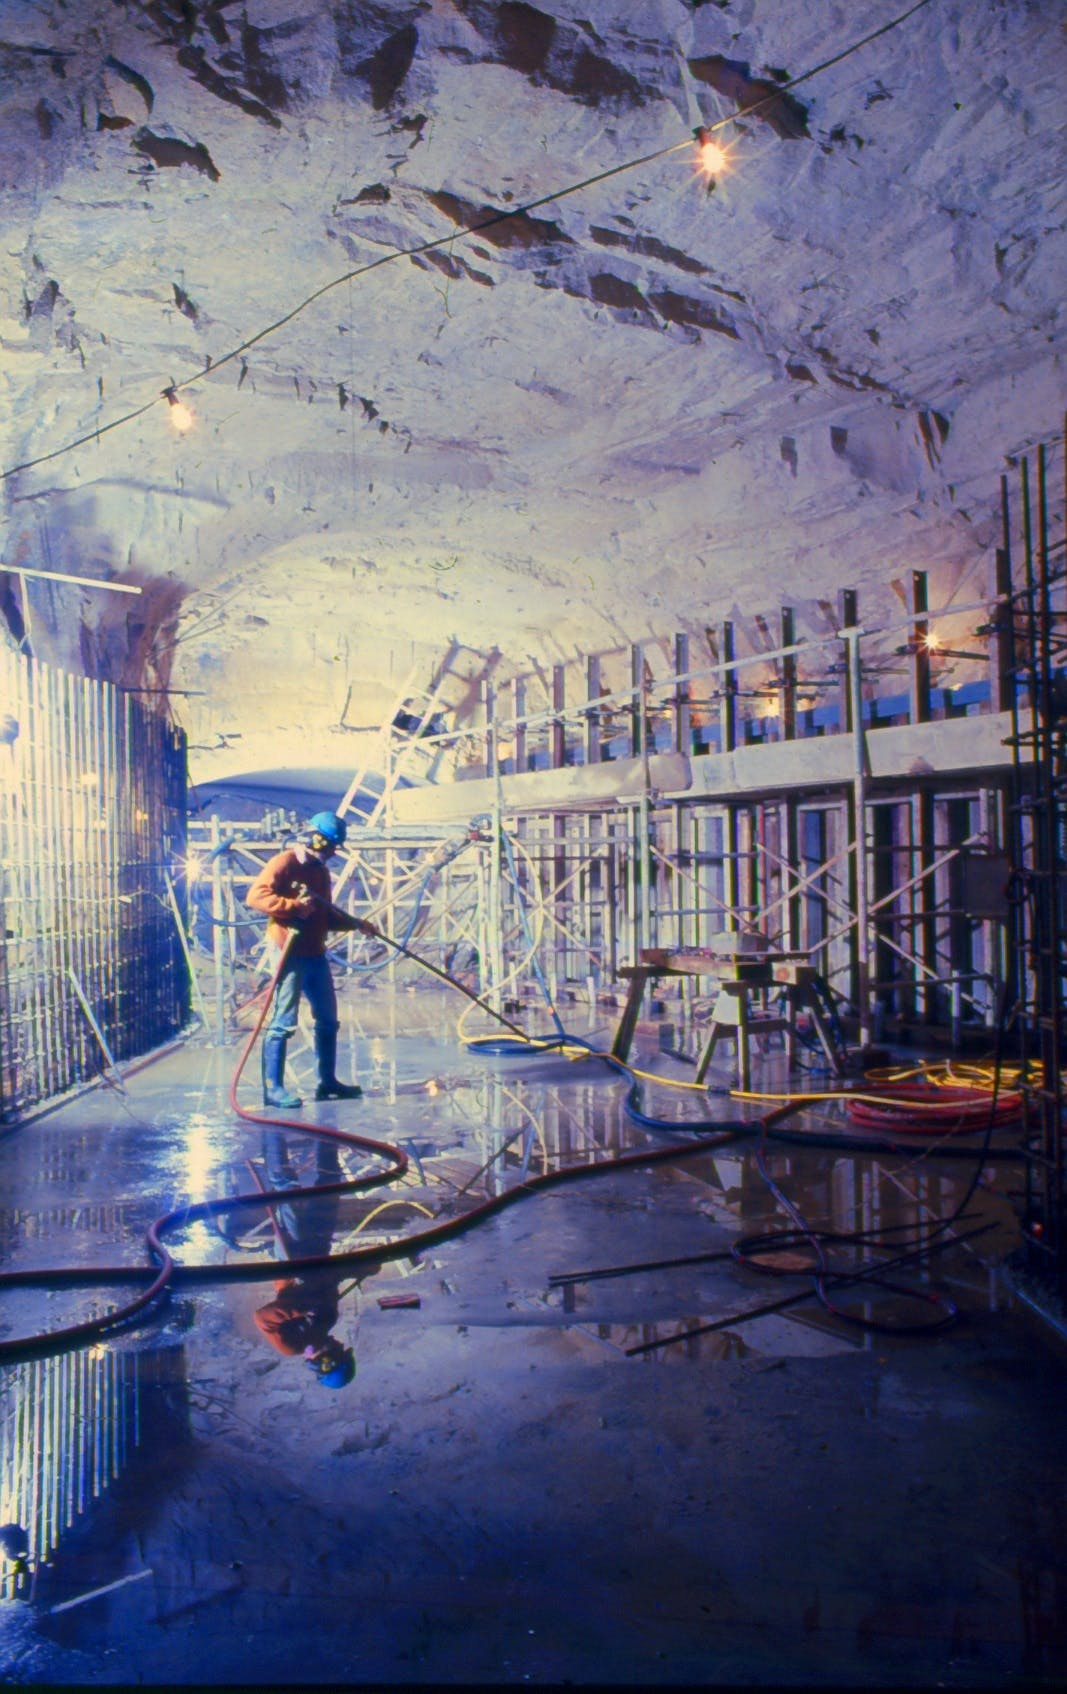 Underground tunnels being cleaned during construction